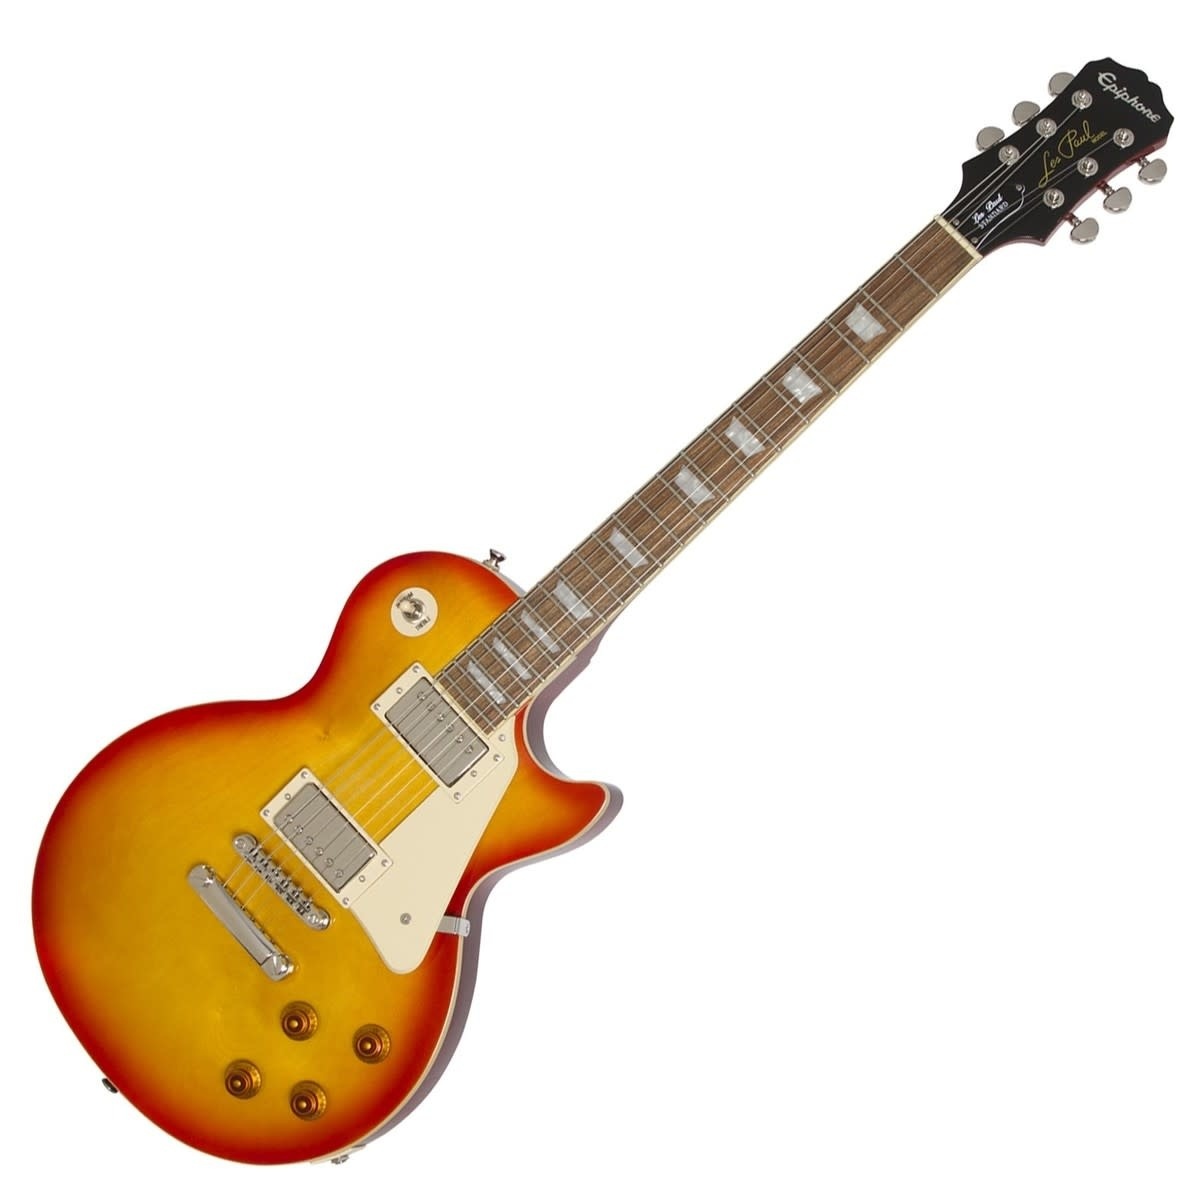 Epiphone Epiphone Les Paul Standard, Faded Cherry Sunburst